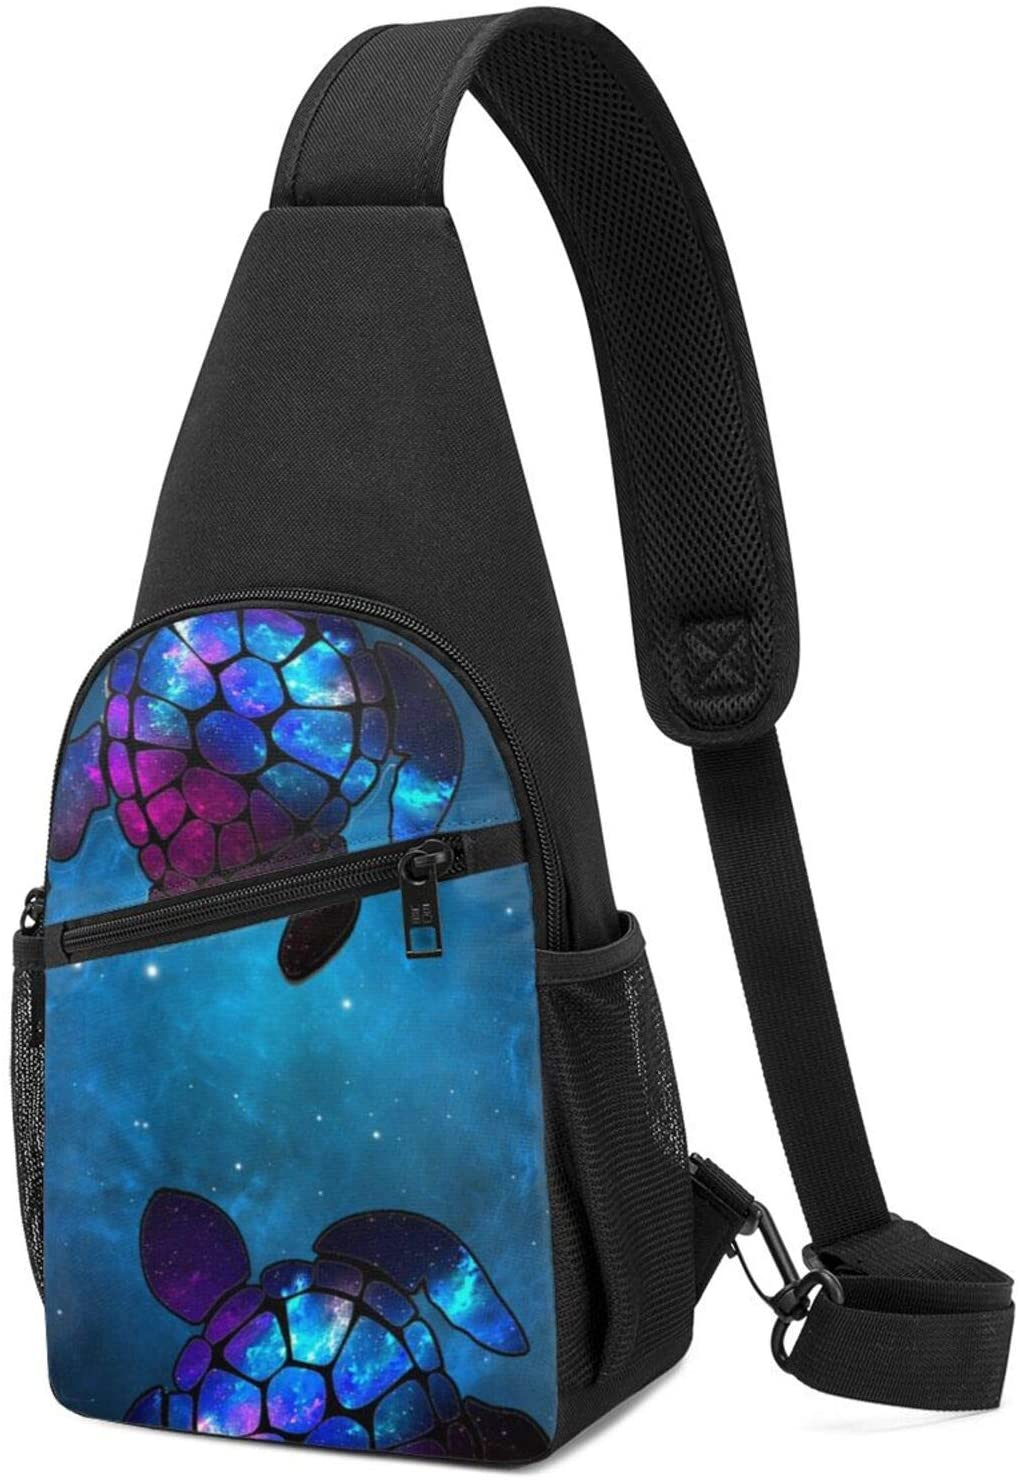 NiYoung Student Sea Turtle Galaxy Chest Crossbody Fashion Outdoor Backpack Multipurpose Sling Backpack Bag for Work, Commuting, Outdoor